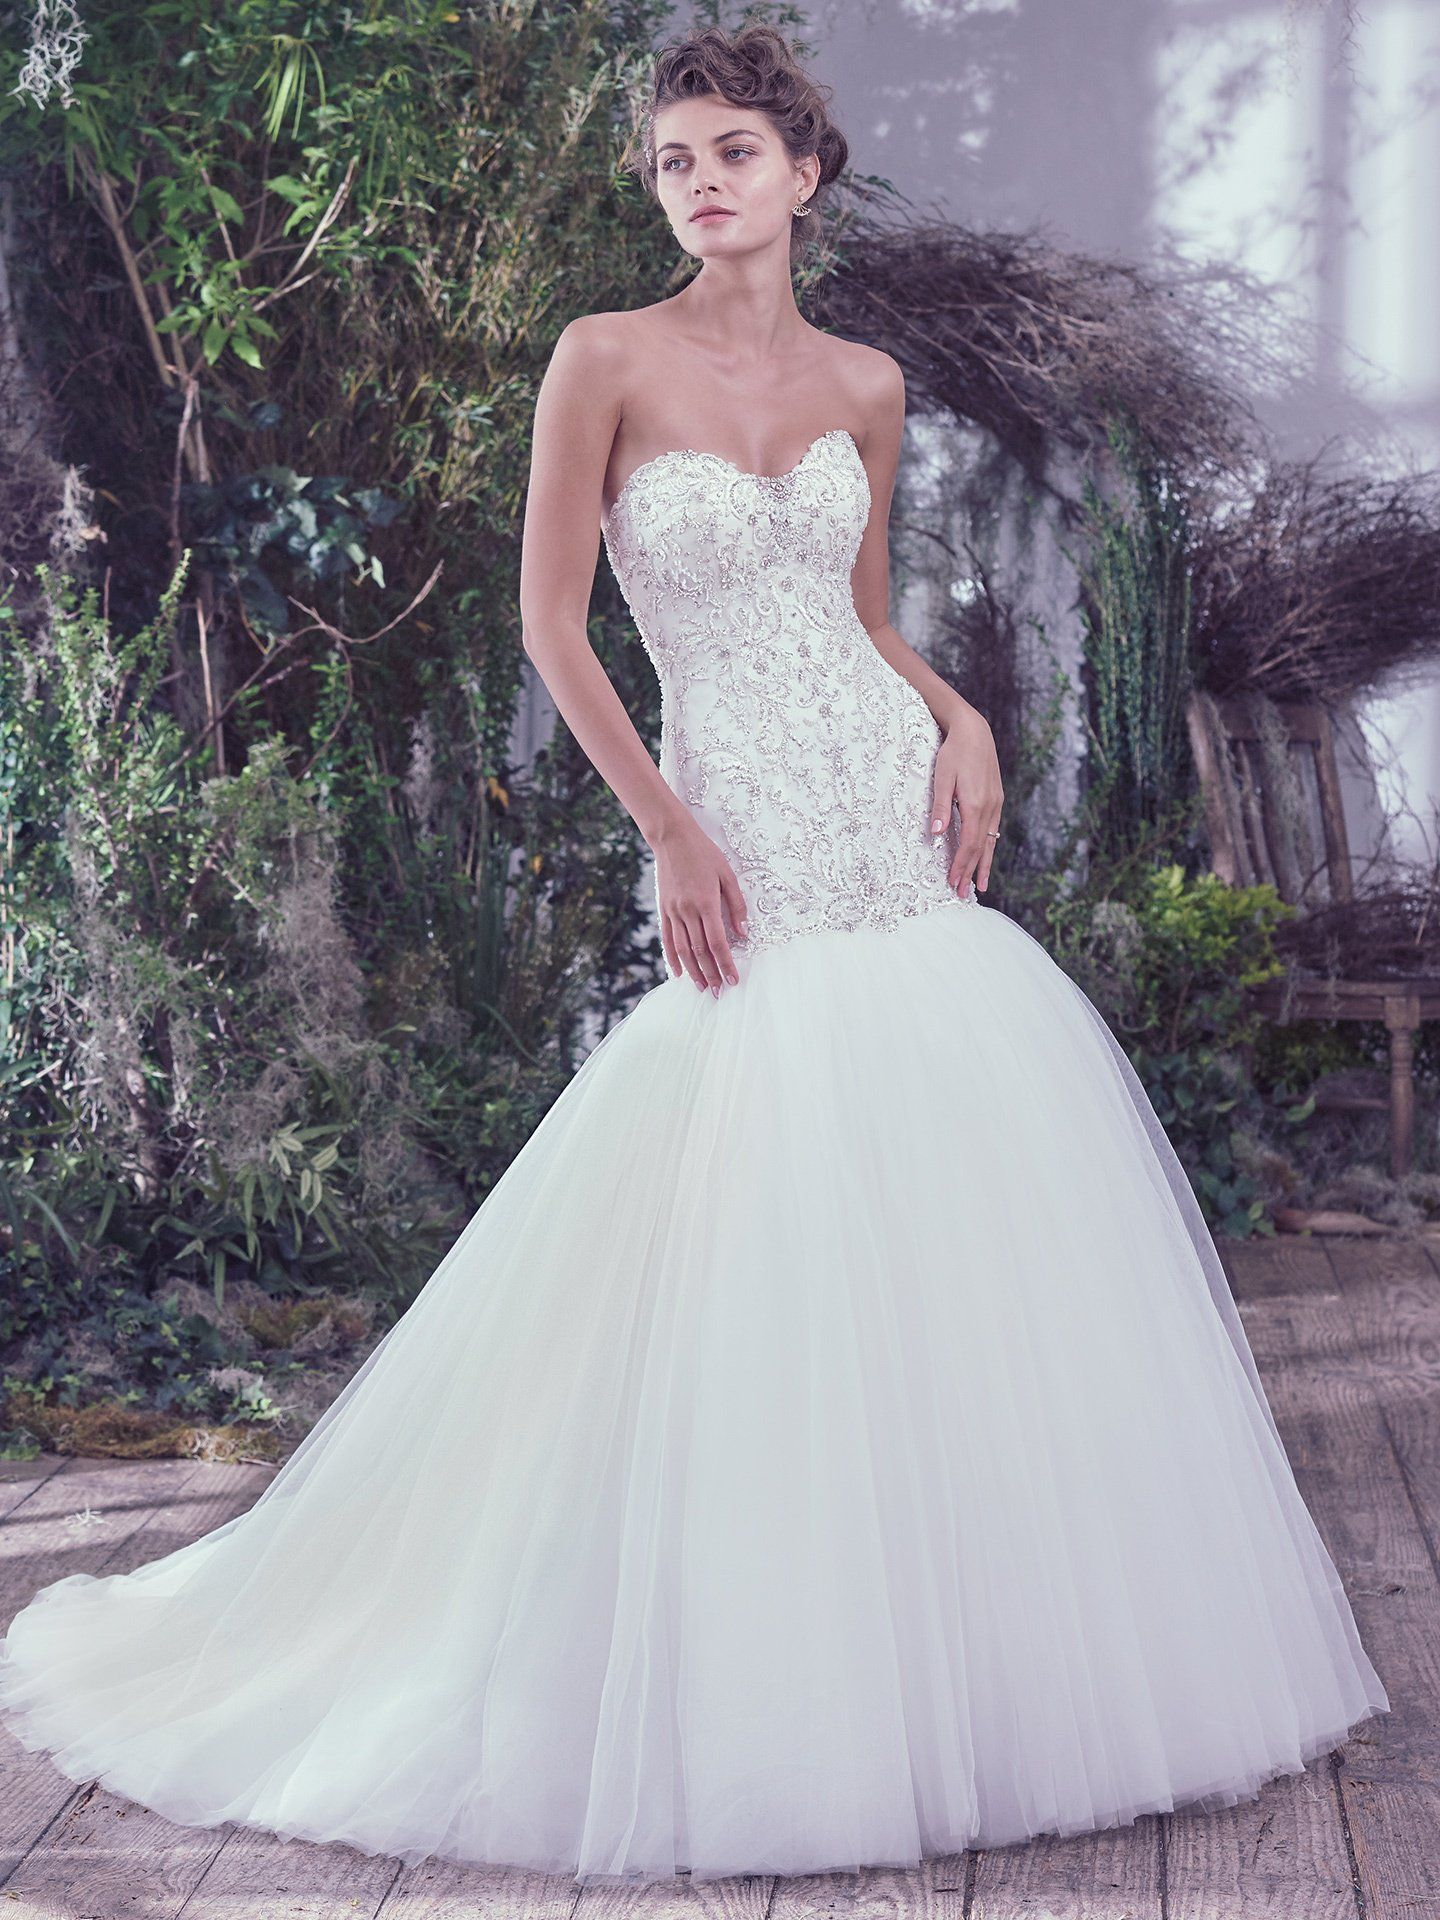 Form fitting lace wedding dresses  Maggie Sottero Wedding Dresses  Maggie sottero and Wedding dress